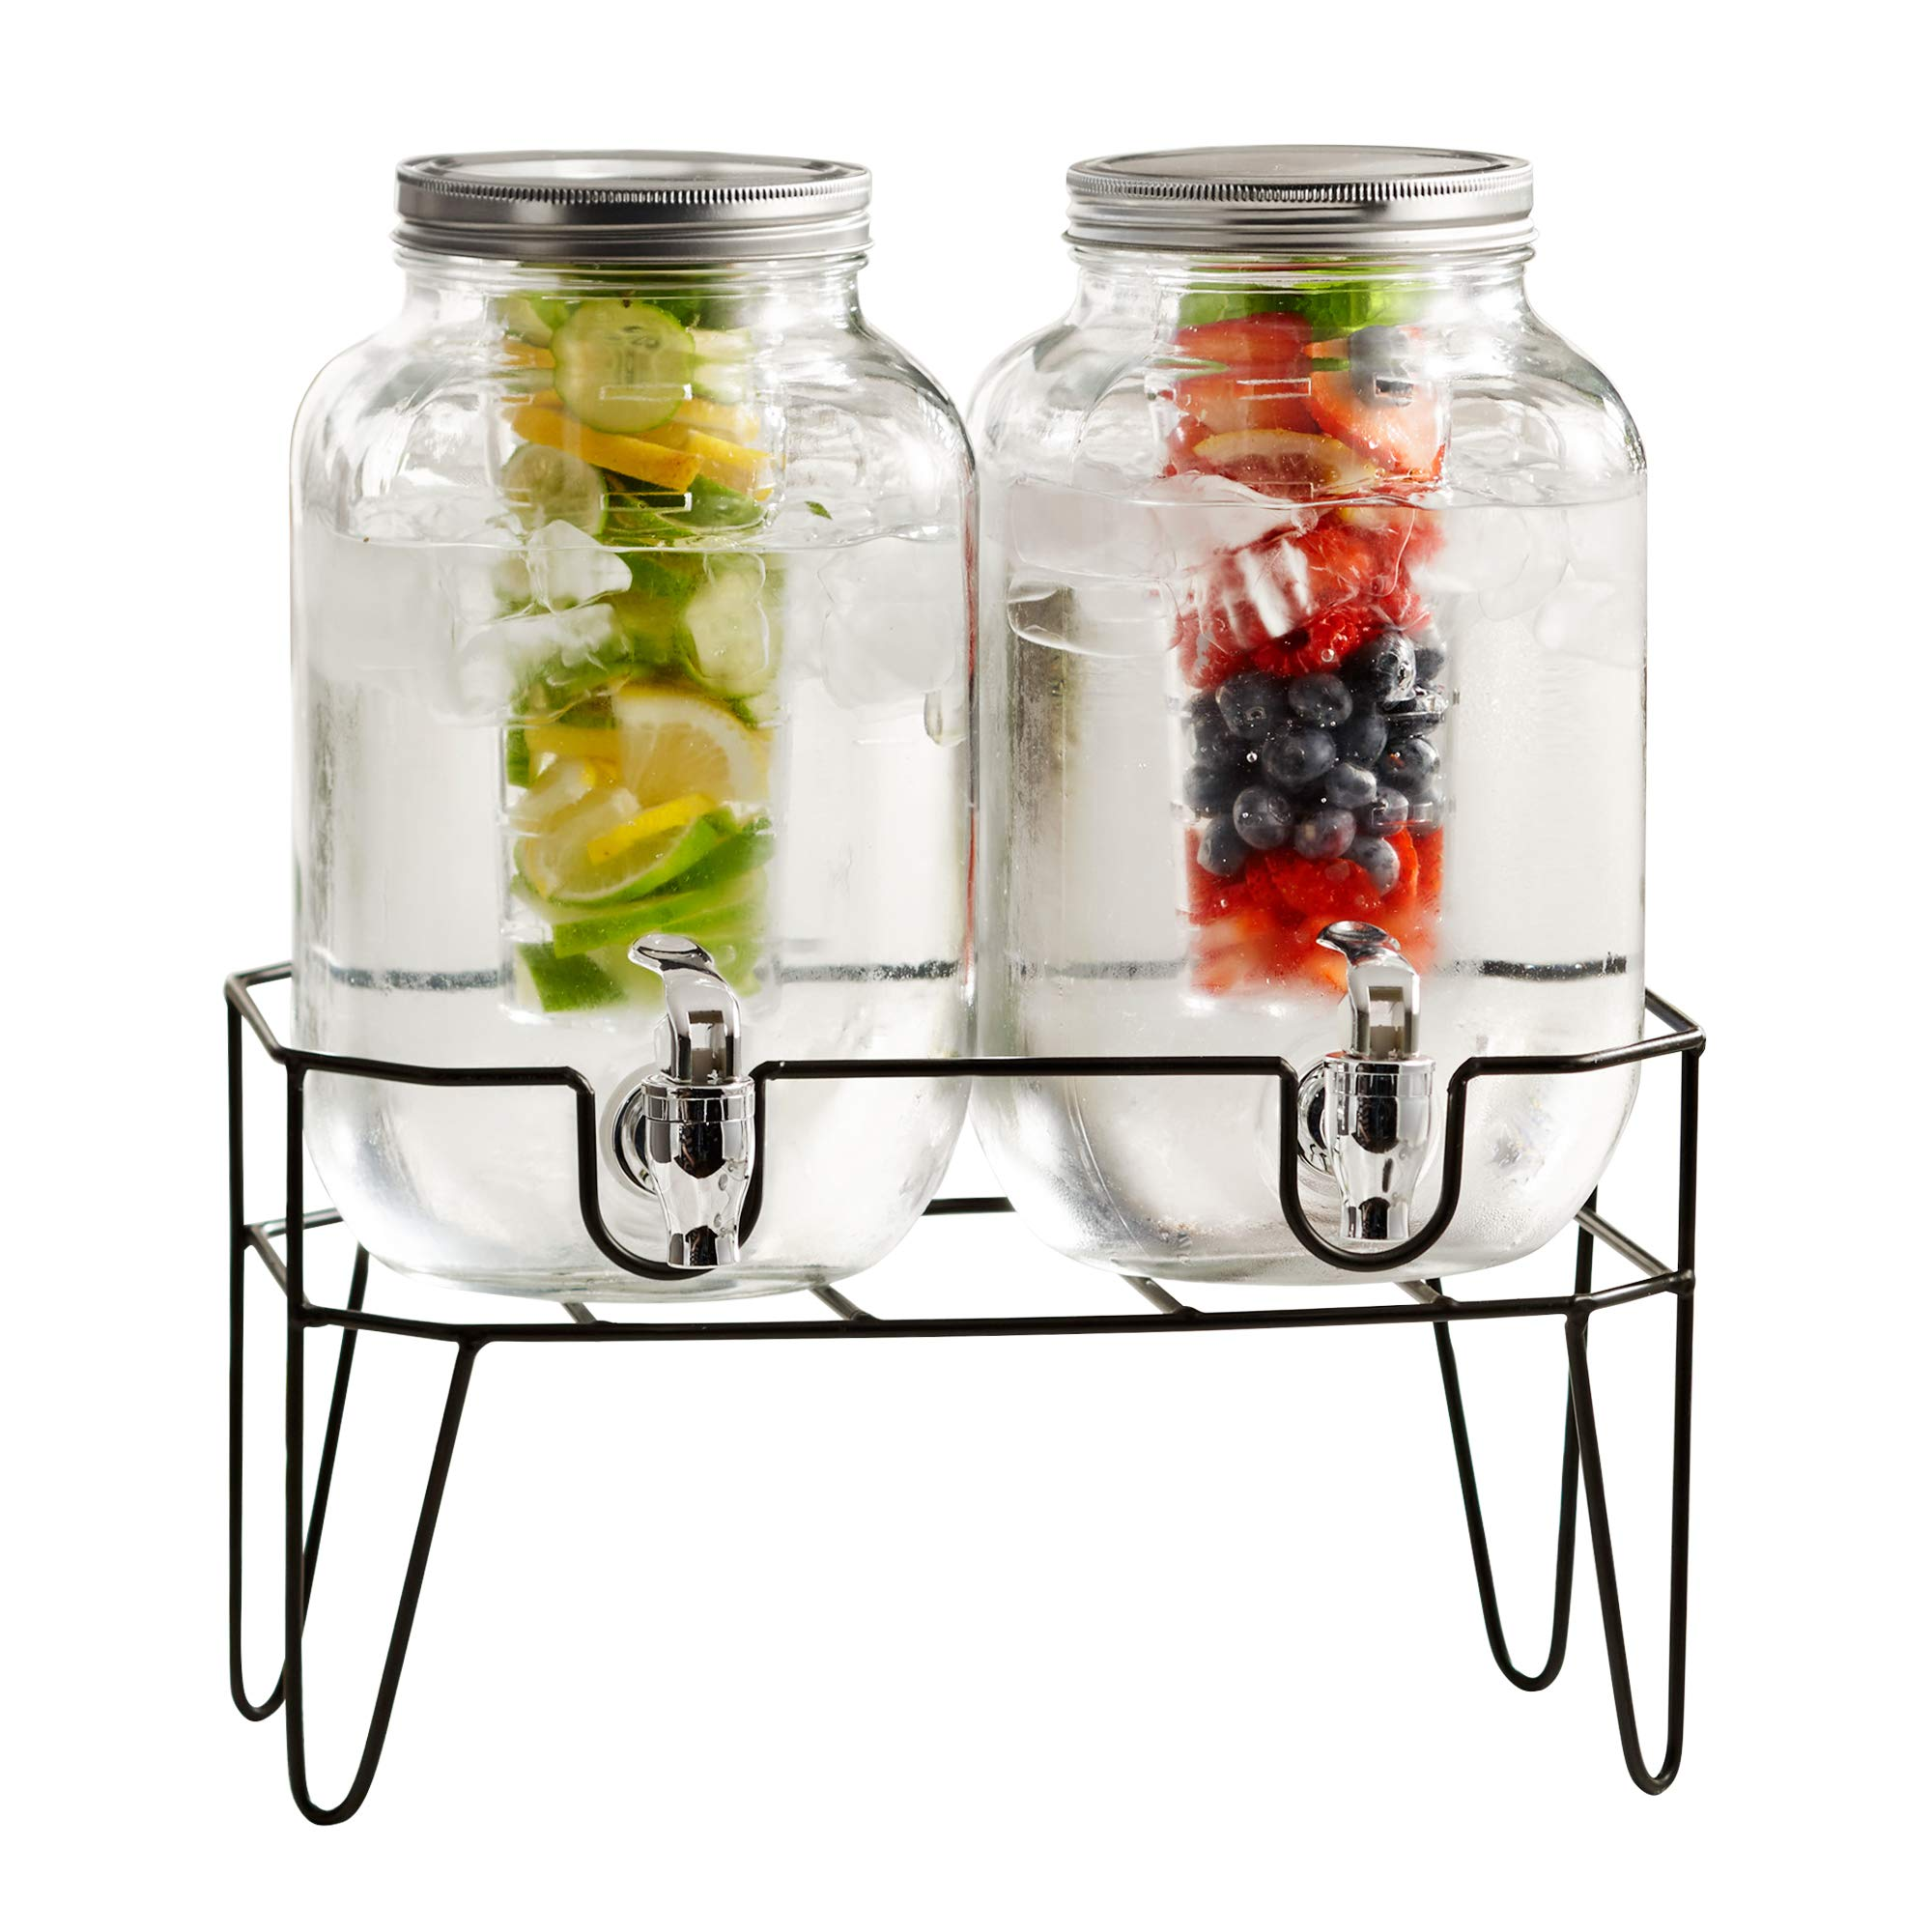 Style Setter Beck 210741-GB 2 Gallon Infuser Glass Beverage Dispenser with Metal Stand and Lid, 8x9x17, Clear (W/Fruit Infuser)